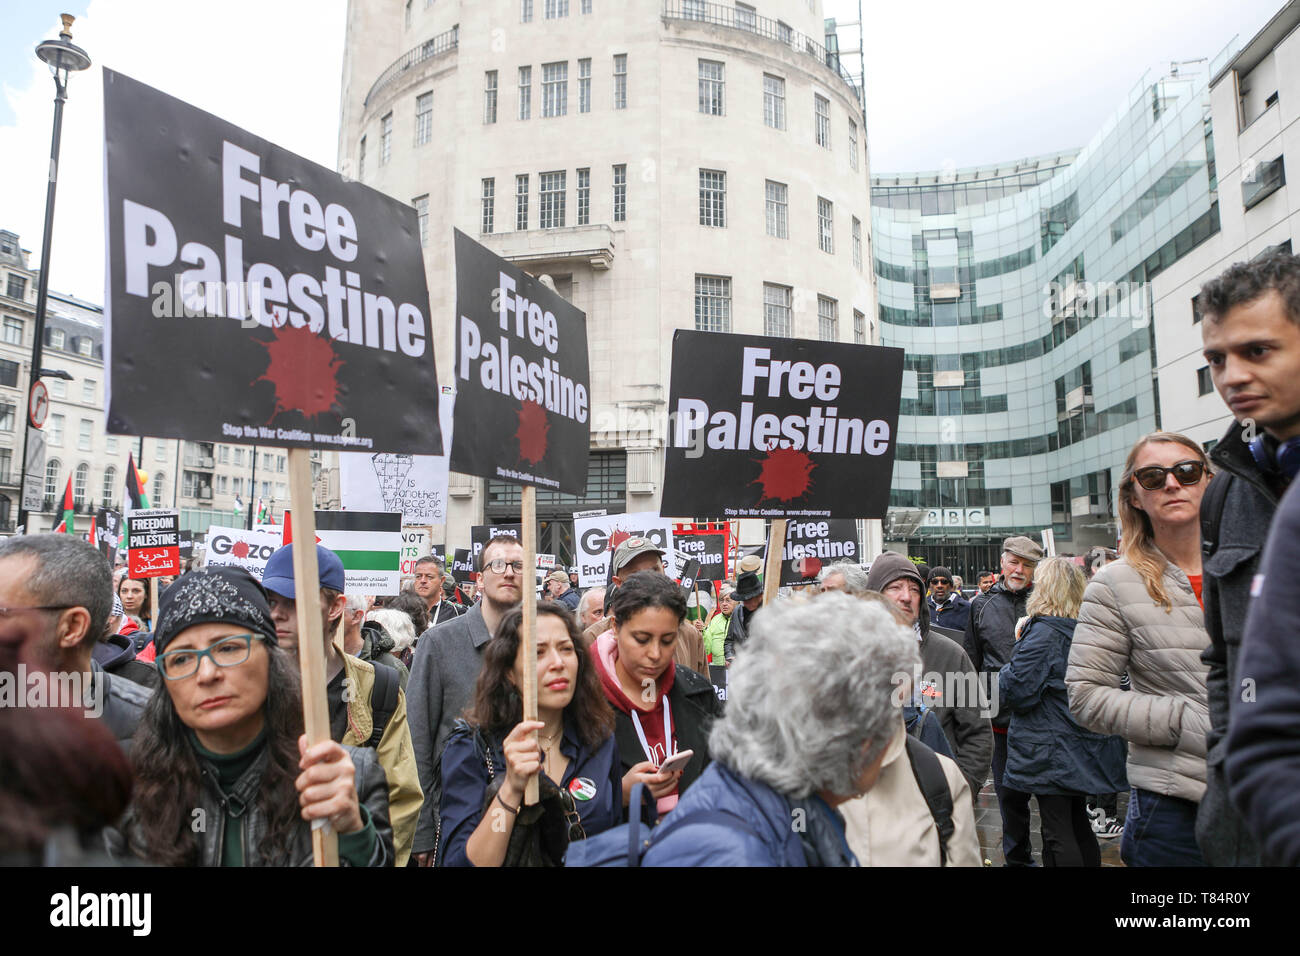 London, UK. 11th May, 2019. National demonstration for Palestine, from Portland Place to Whitehall. As Israel continues to break international law and violate human rights, the demonstration highlights to the global community its responsibility to hold Israel to account and push for an end to the oppression of the Palestinian people. Penelope Barritt/Alamy Live News - Stock Image